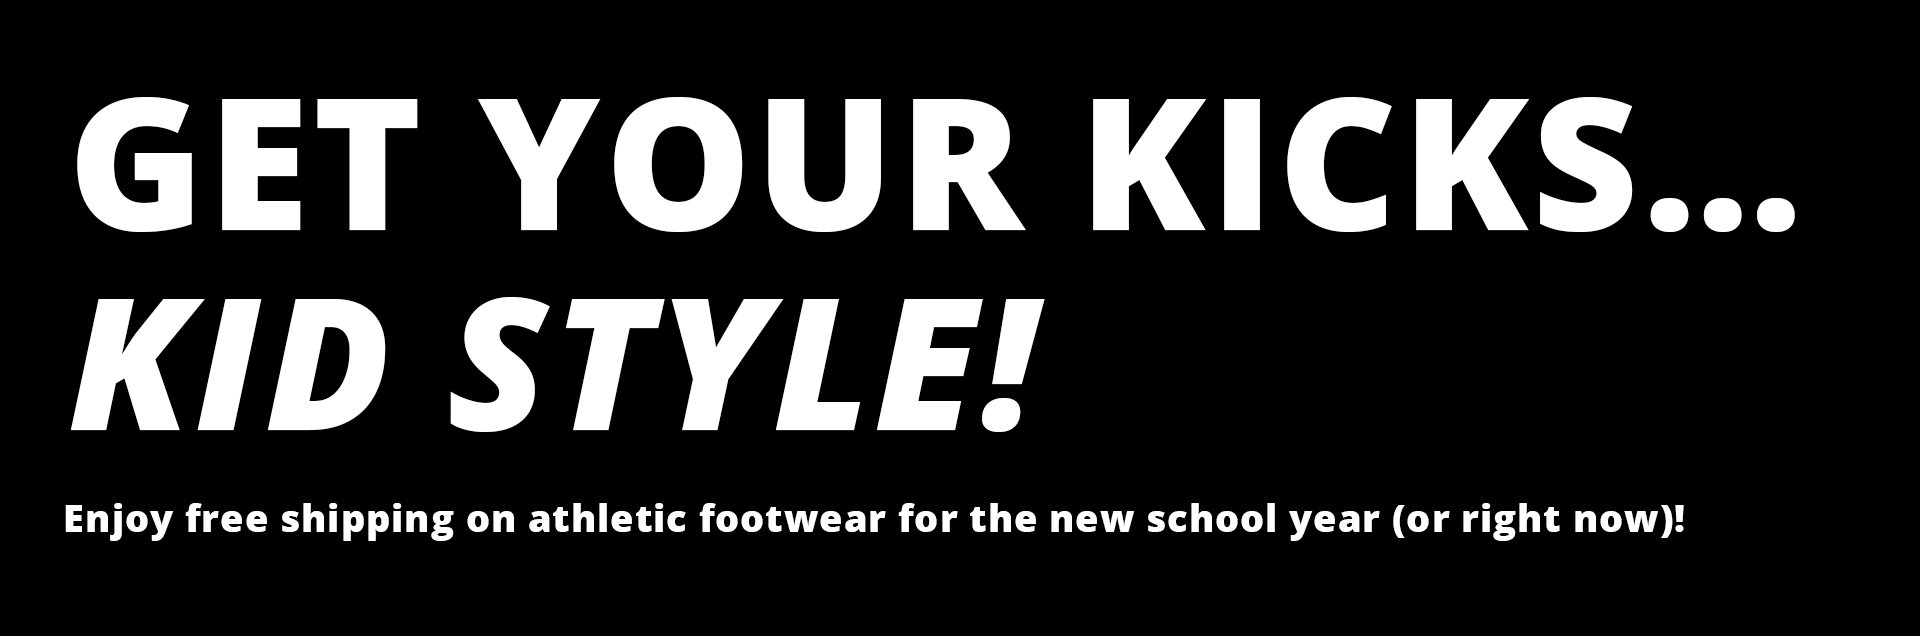 Get your kicks...Kid style